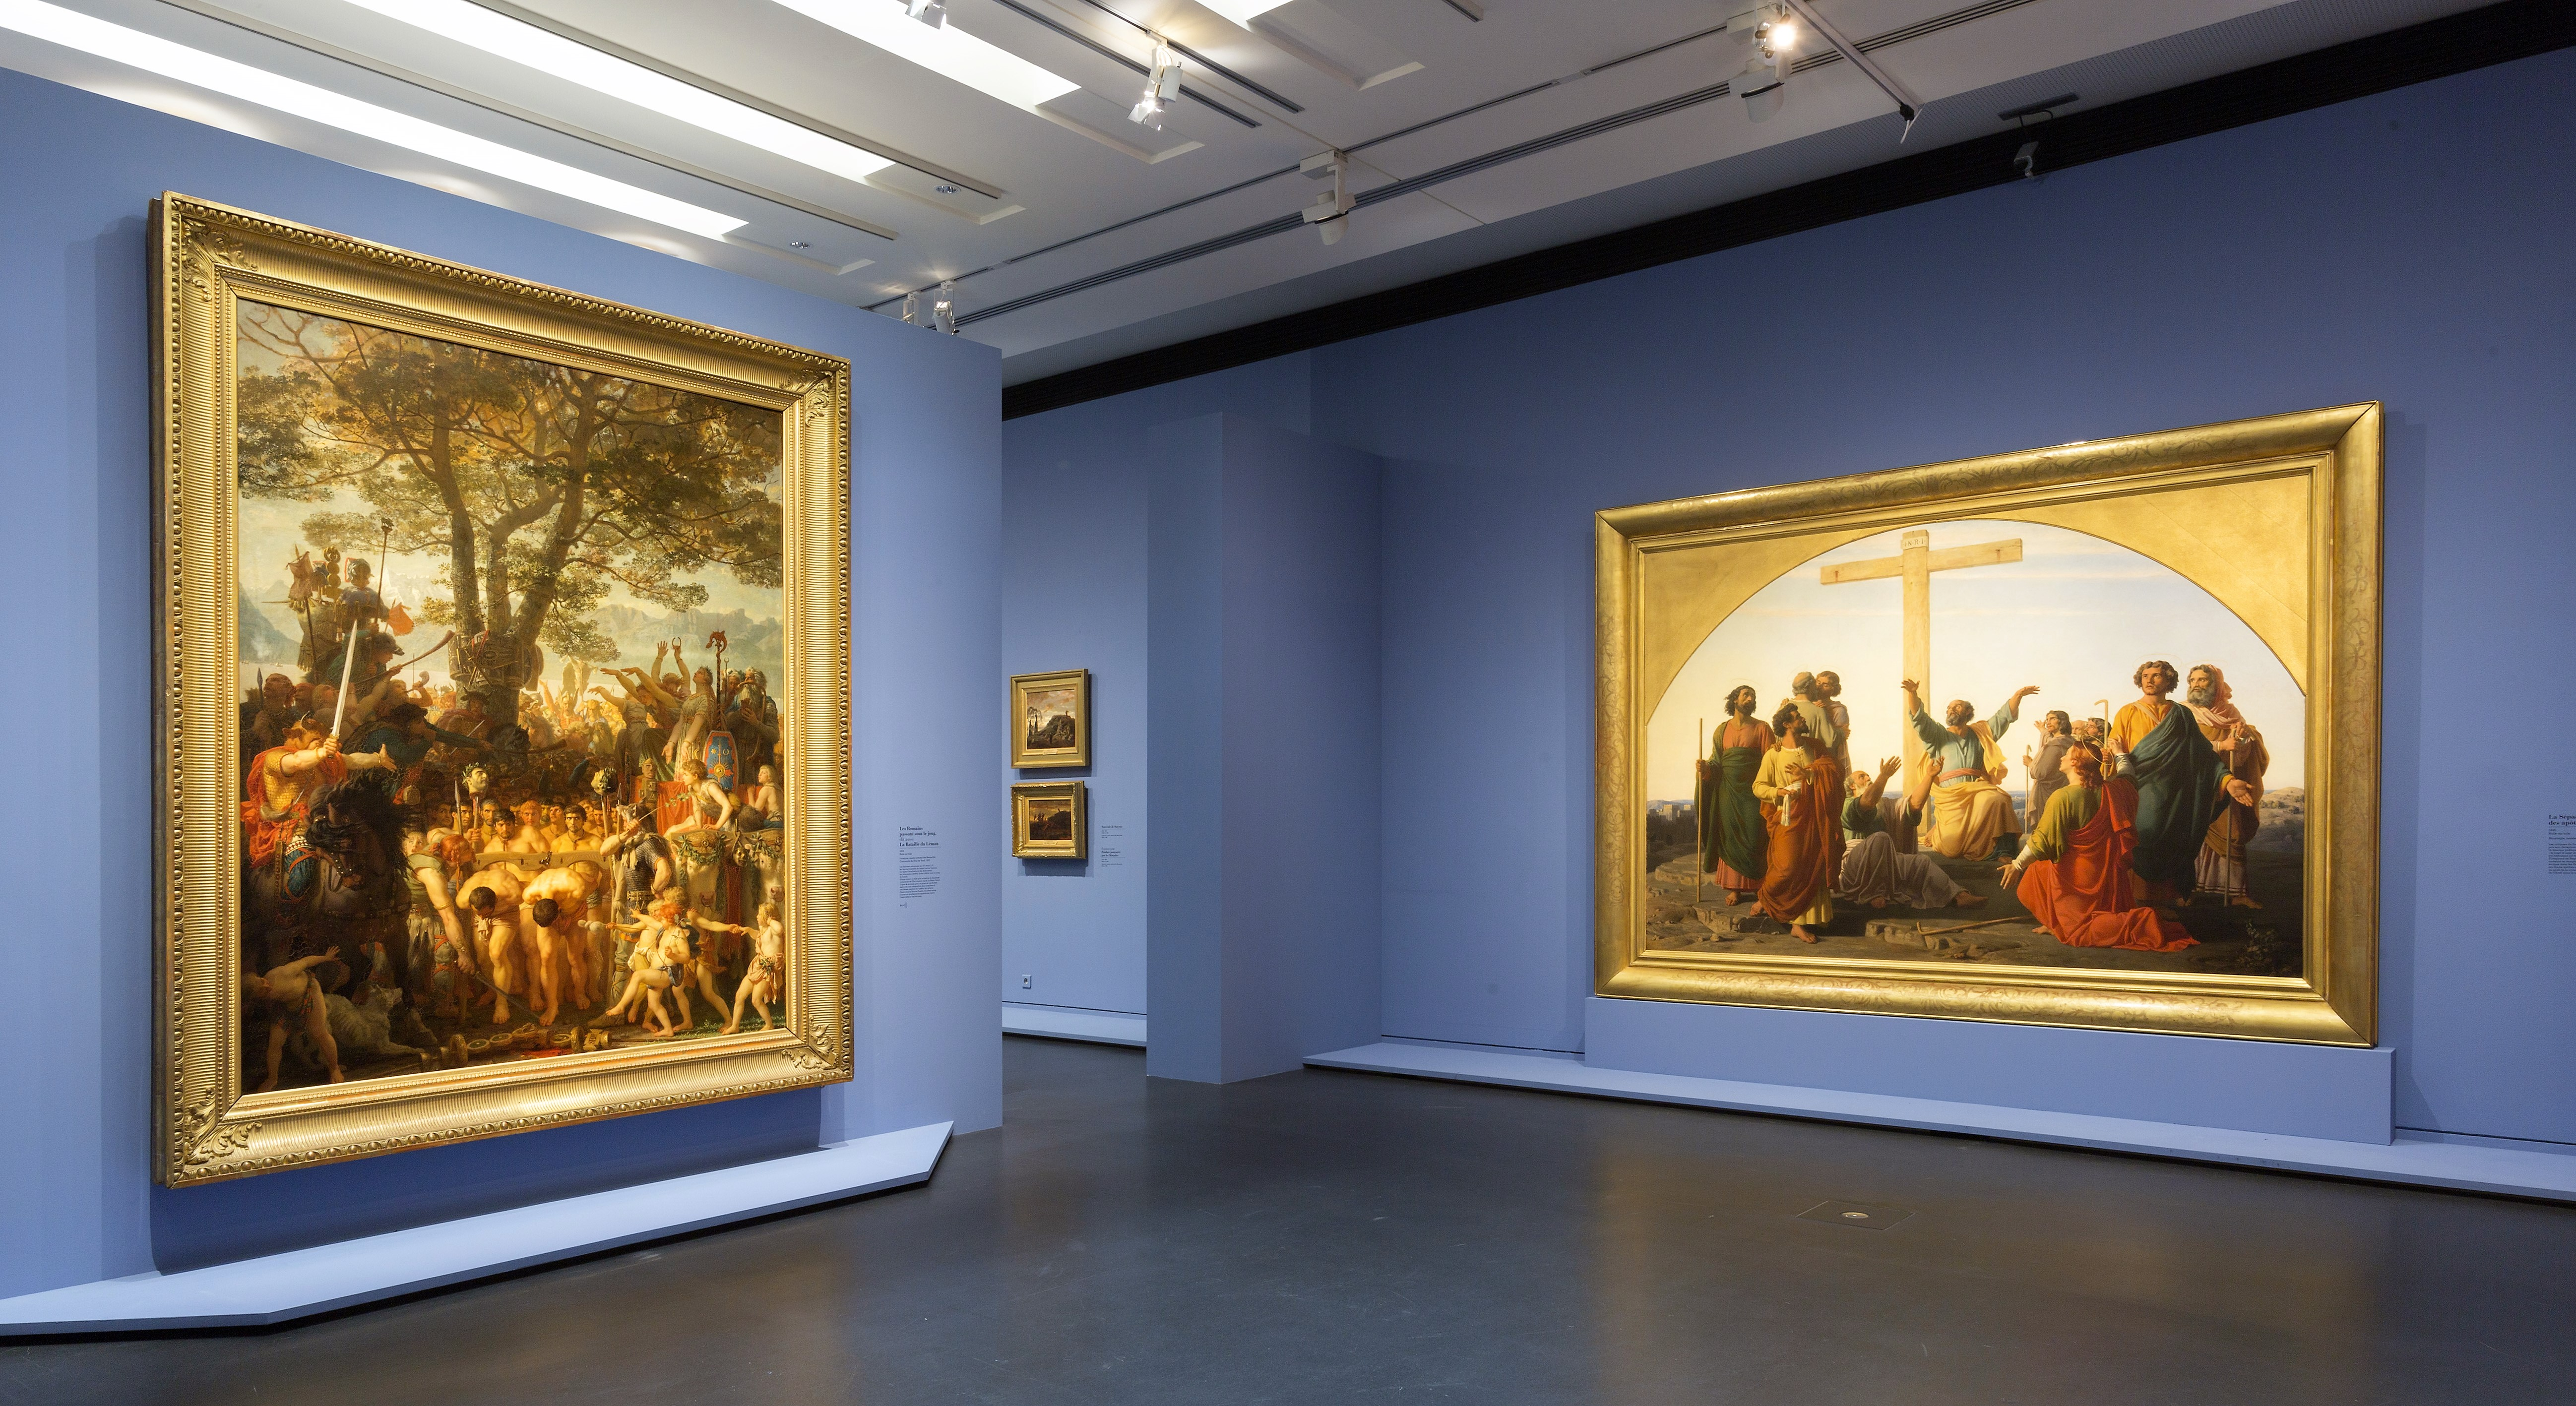 Exposition charles gleyre mus e d 39 orsay romain paris - Musee d orsay expo ...